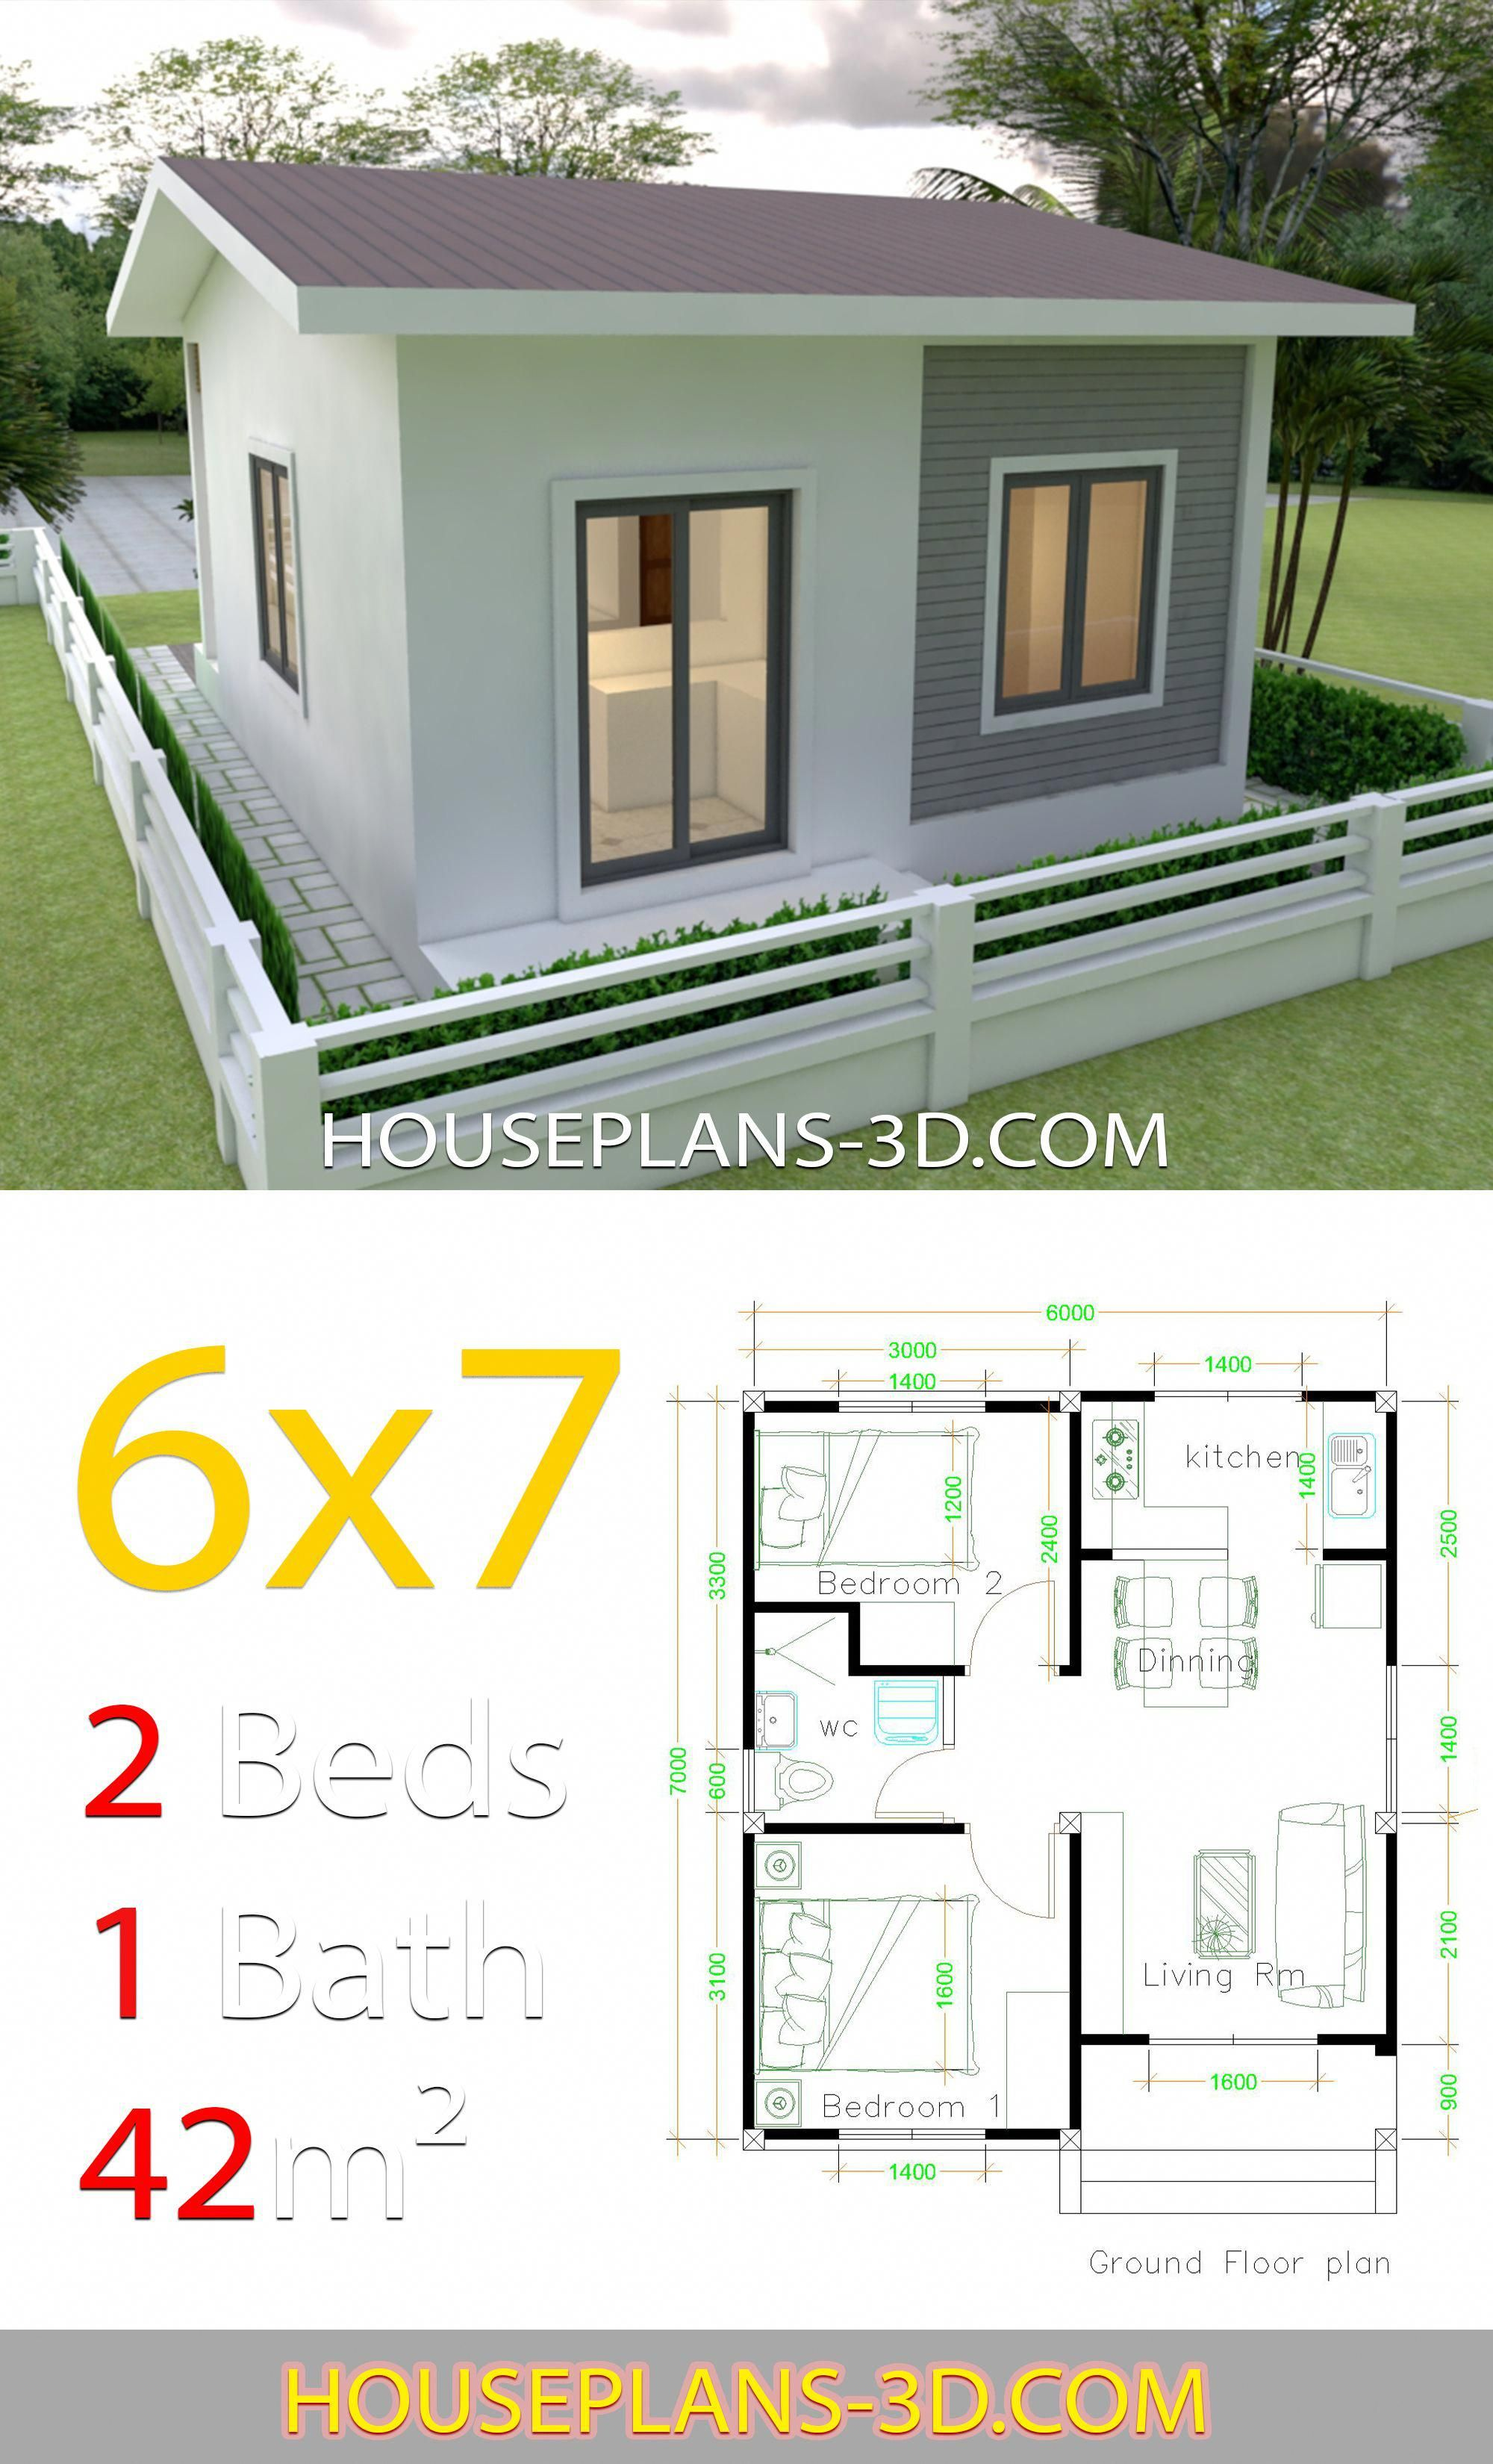 House Design 6x7 With 2 Bedrooms House Plans 3d Aframecabin Small House Architecture Tiny House Design Small House Design